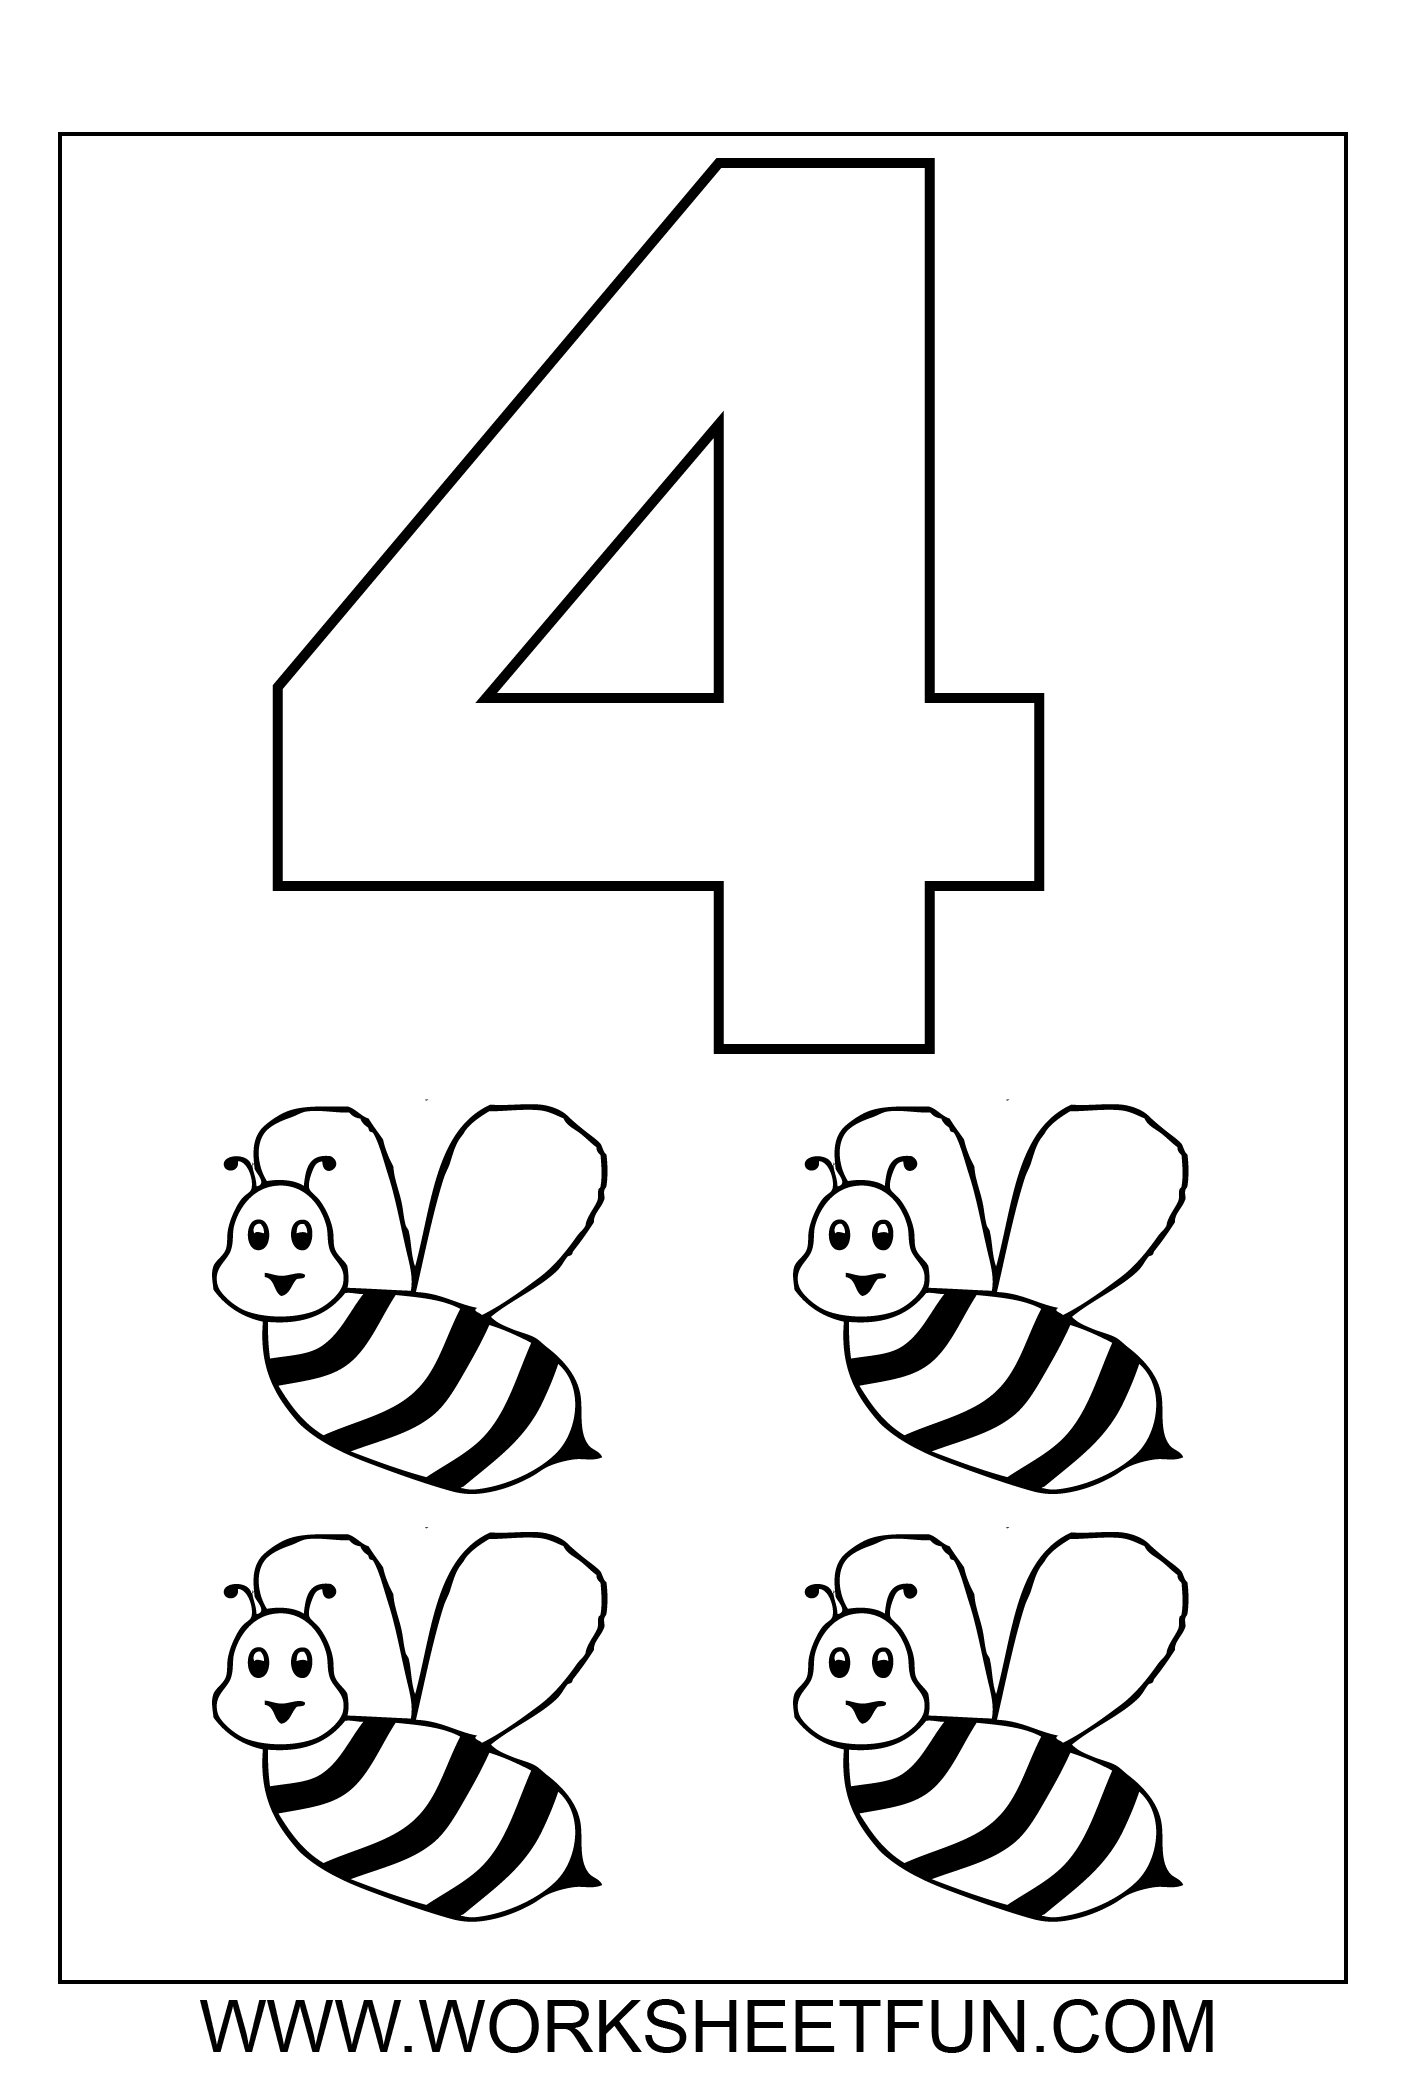 7 best images of number 4 coloring pages printable number 4